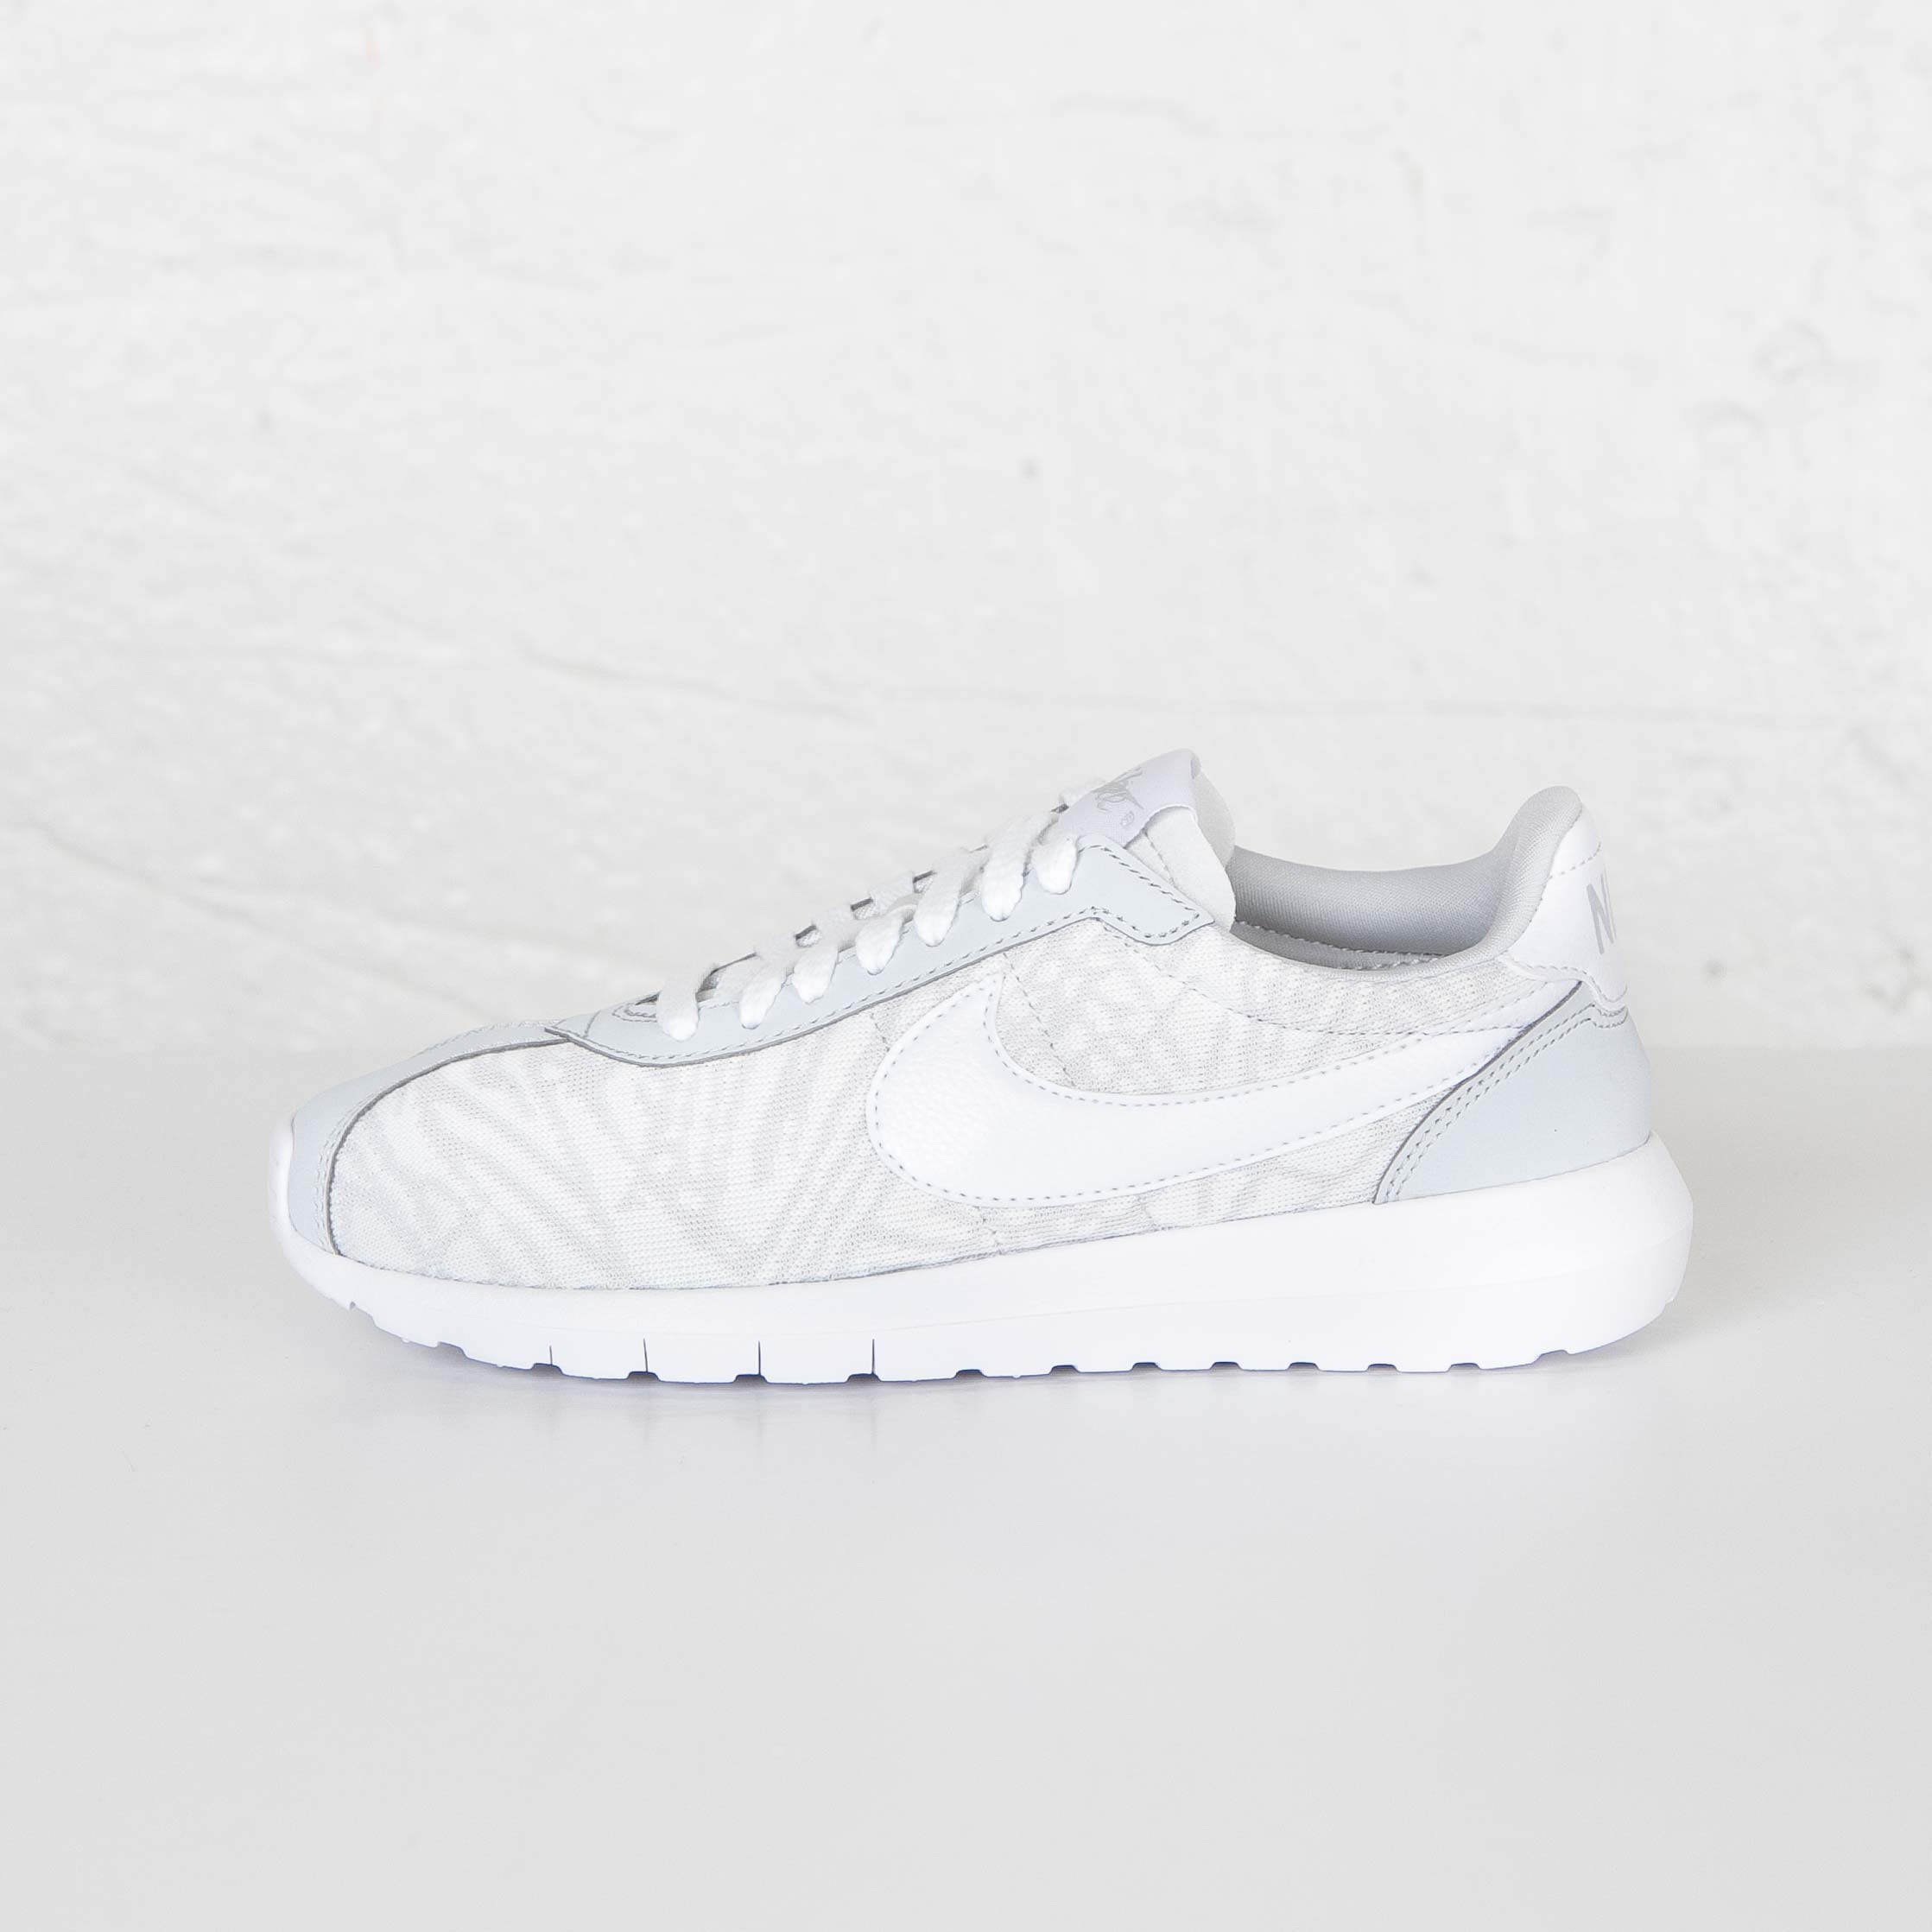 newest collection f3052 8c032 Nike W Roshe LD-1000 Knit Jacquard - 819845-100 - Sneakersnstuff   sneakers    streetwear online since 1999